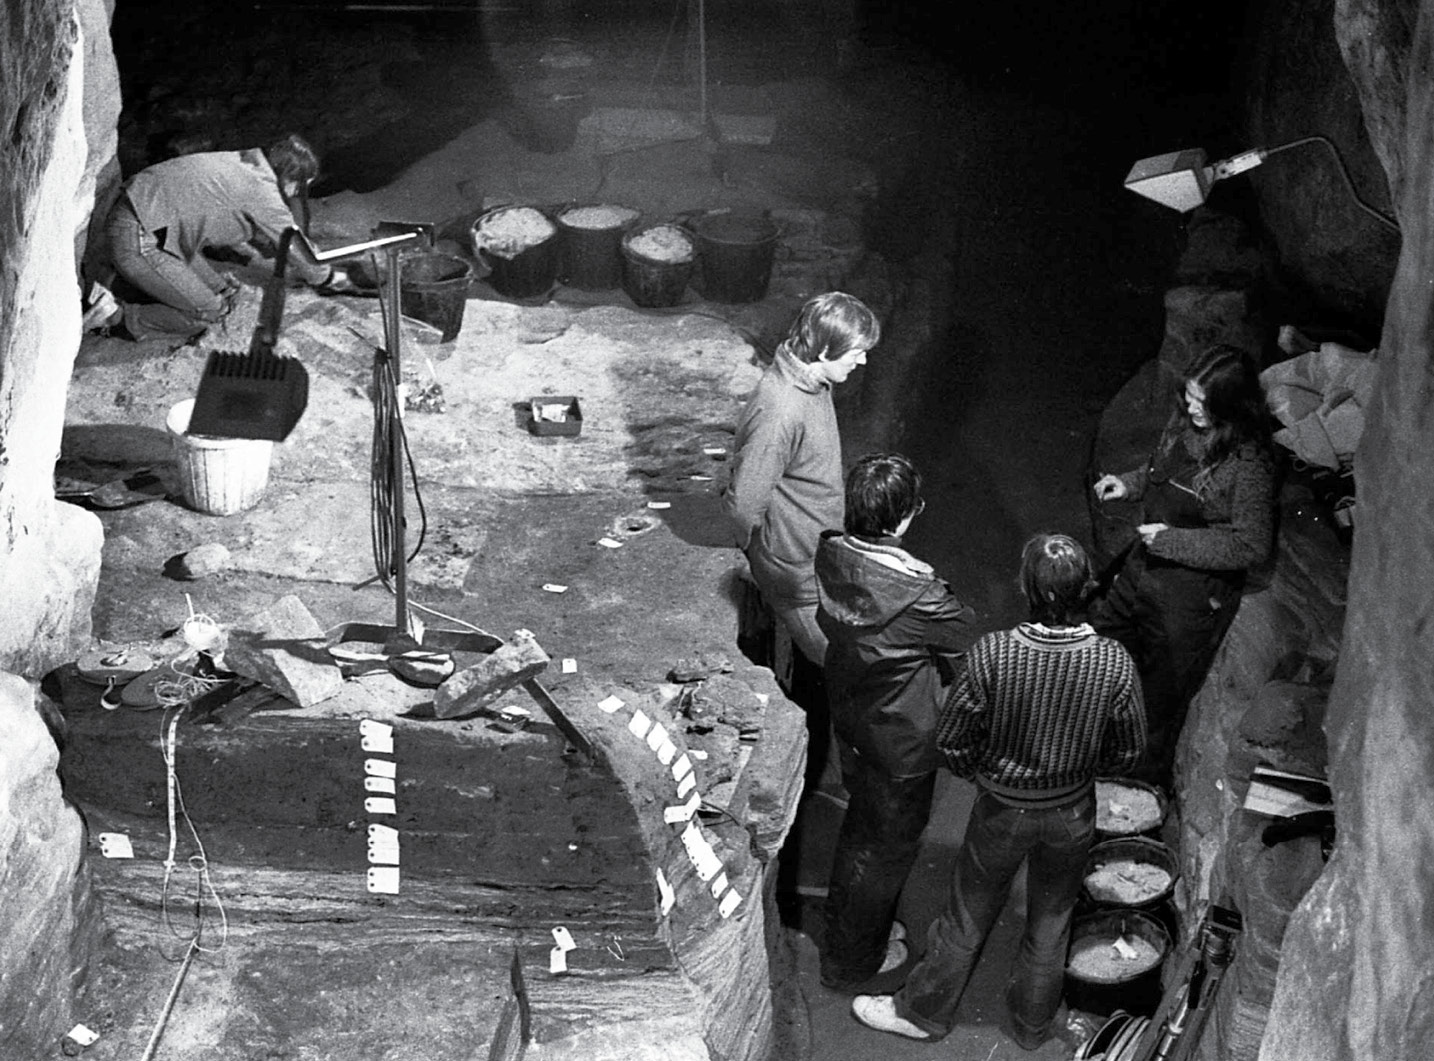 left Ian and Lekky Shepherd worked at the site in 1979. This photograph shows their investigations in the western entrance passage.